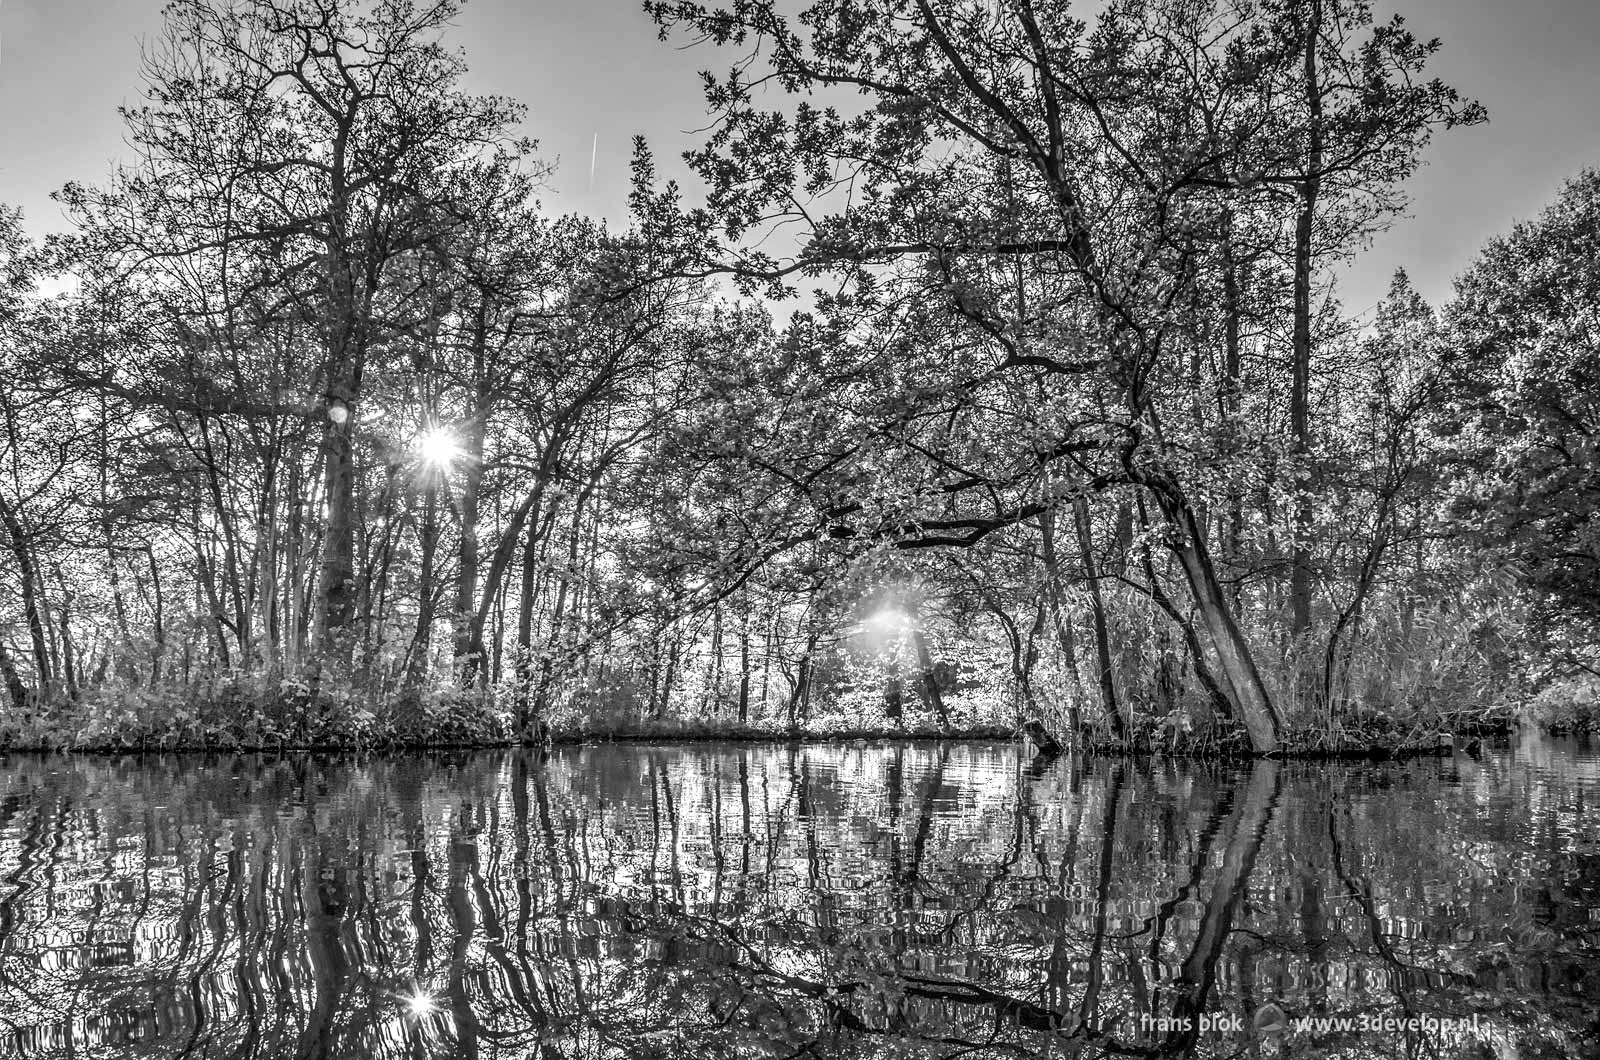 Black and white photo of the autumn in the Brediuspark in Woerden, The Netherlands with a low sun and the reflection of trees on the water surface, with a greenfilter applied in Photoshop